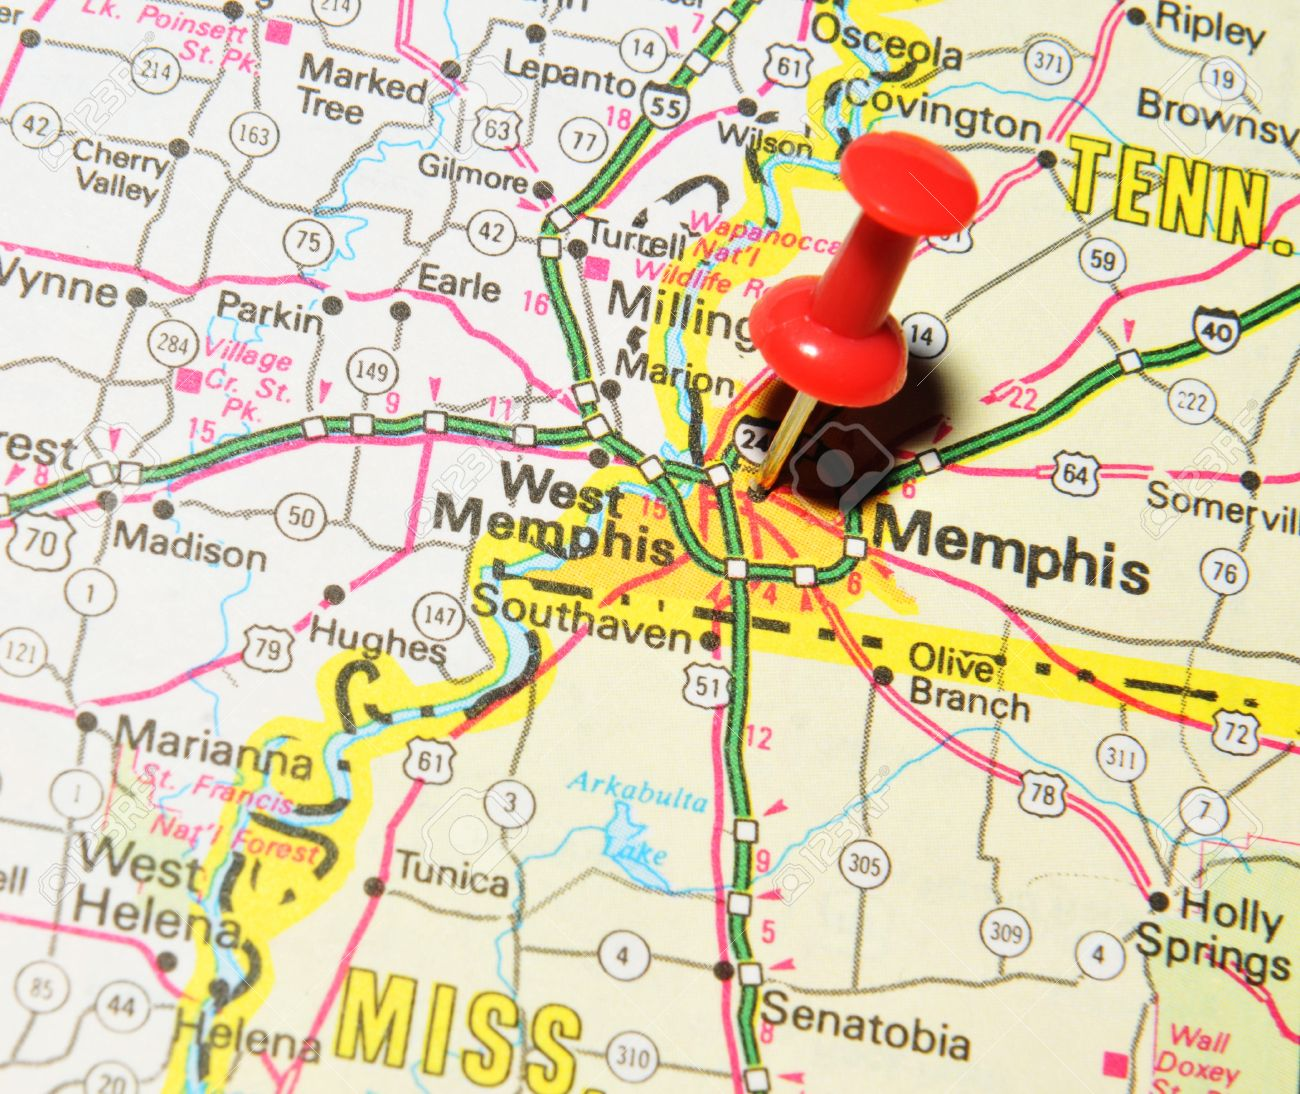 London UK June Memphis Marked With Red Pushpin On - Memphis tn on us map